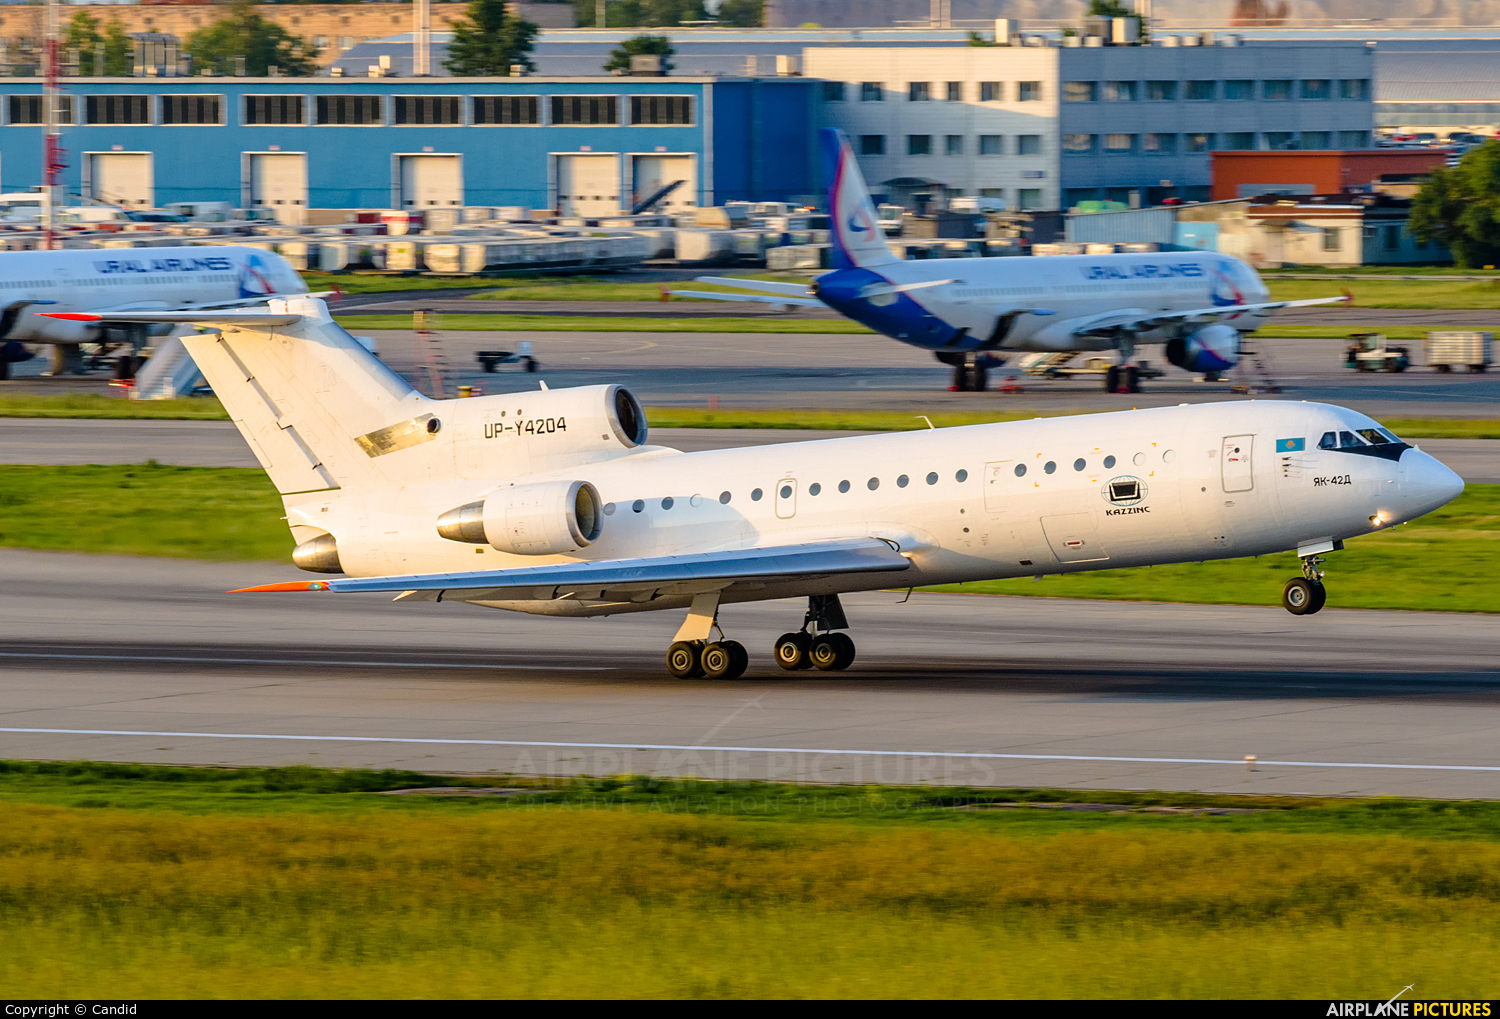 Kazakhstan - Government UP-Y4204 aircraft at Moscow - Domodedovo